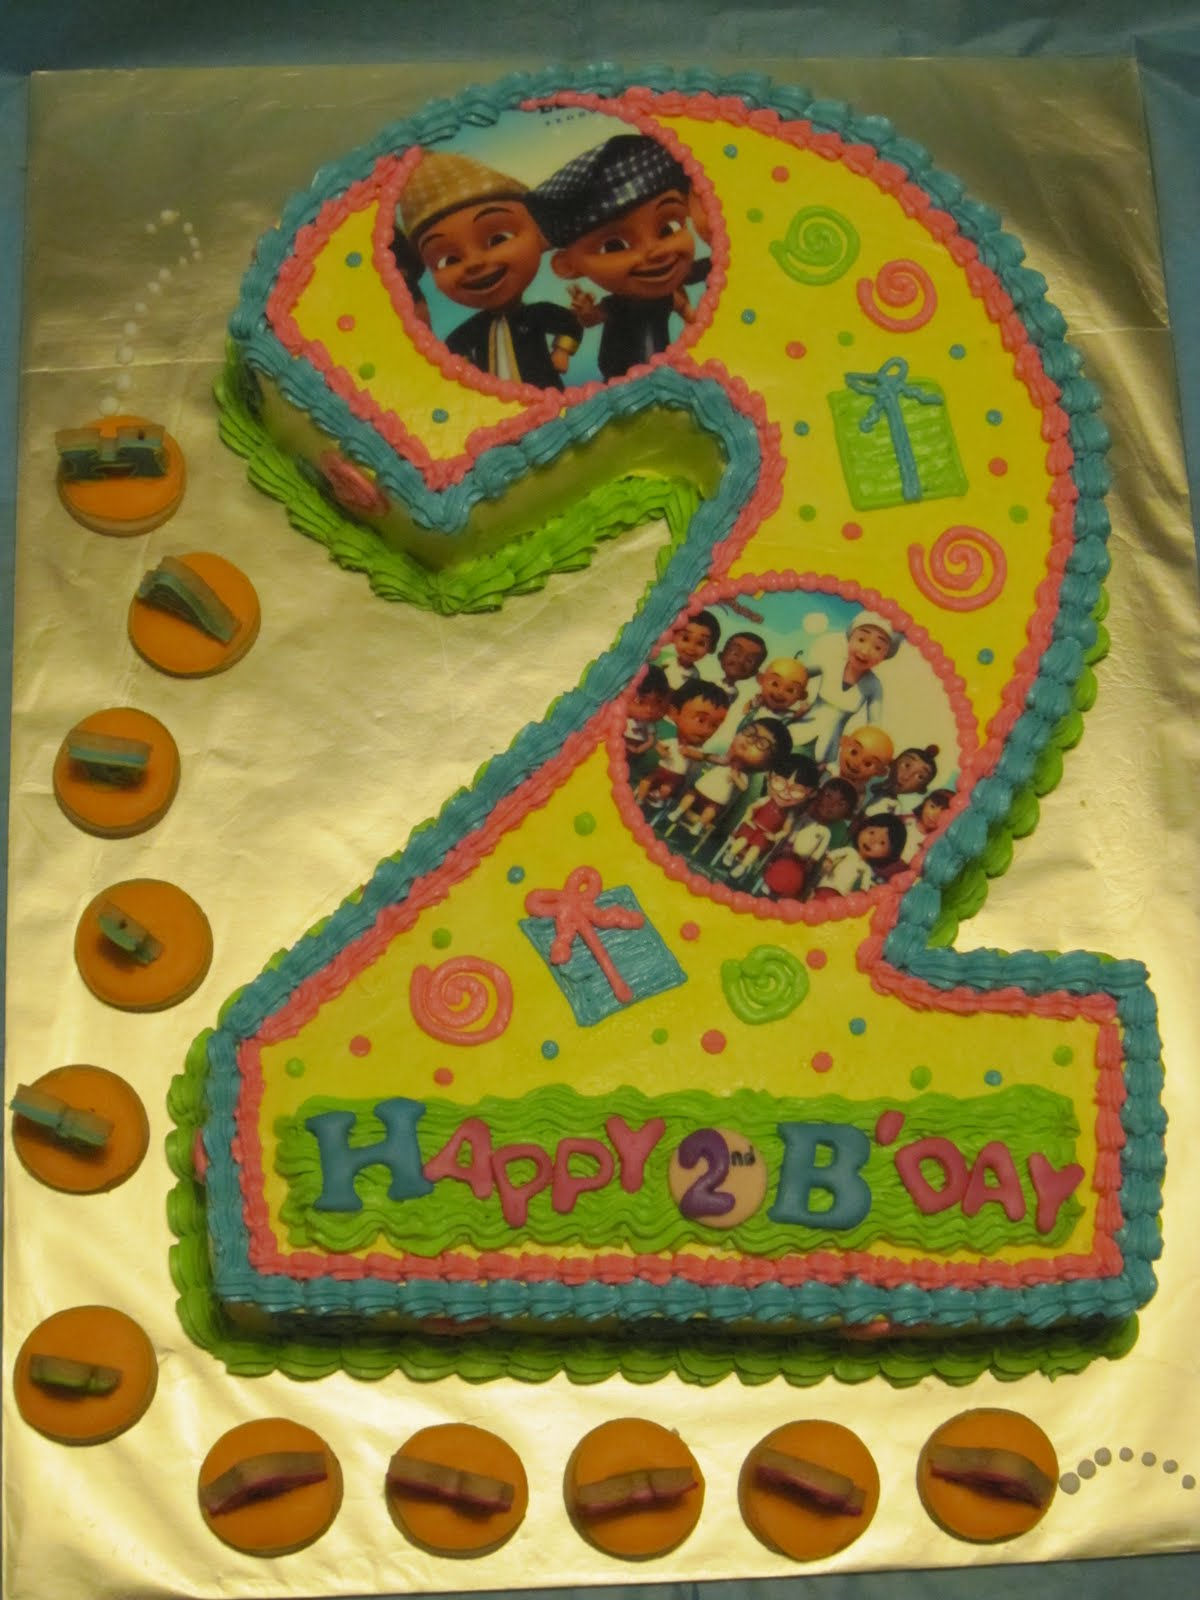 No 2 Cake August 2018 Discount